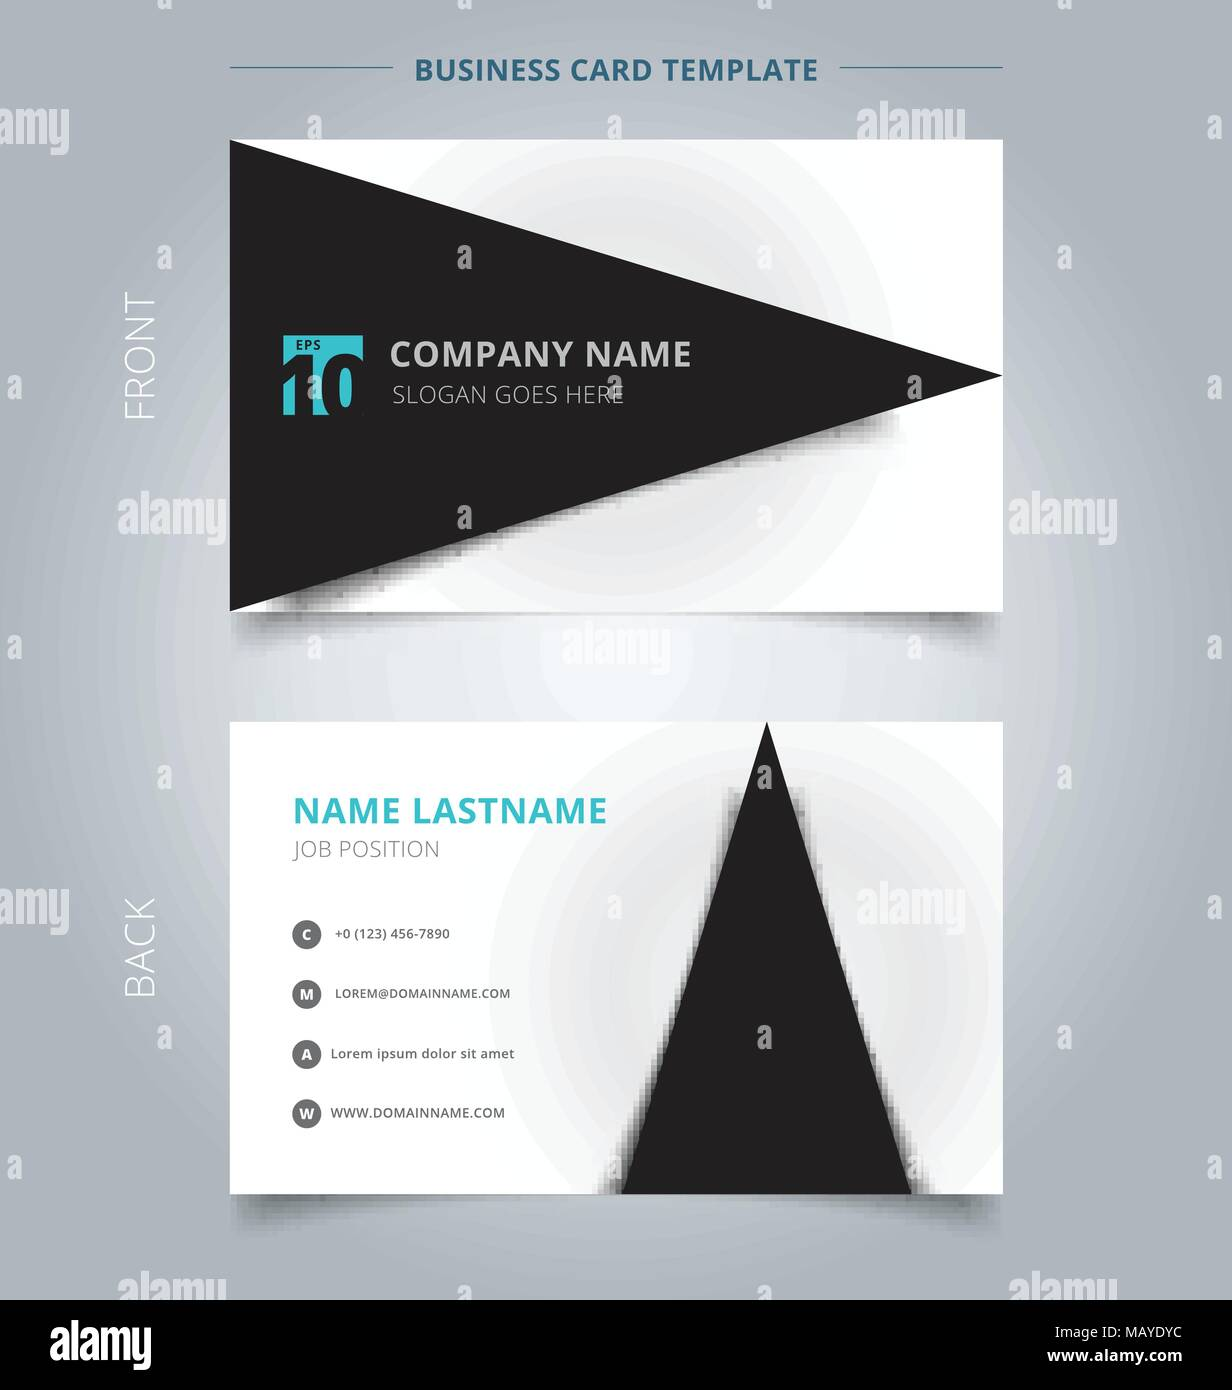 creative business card and name card template black triangle graphic with shadow on white color background abstract concept and commercial design v MAYDYC